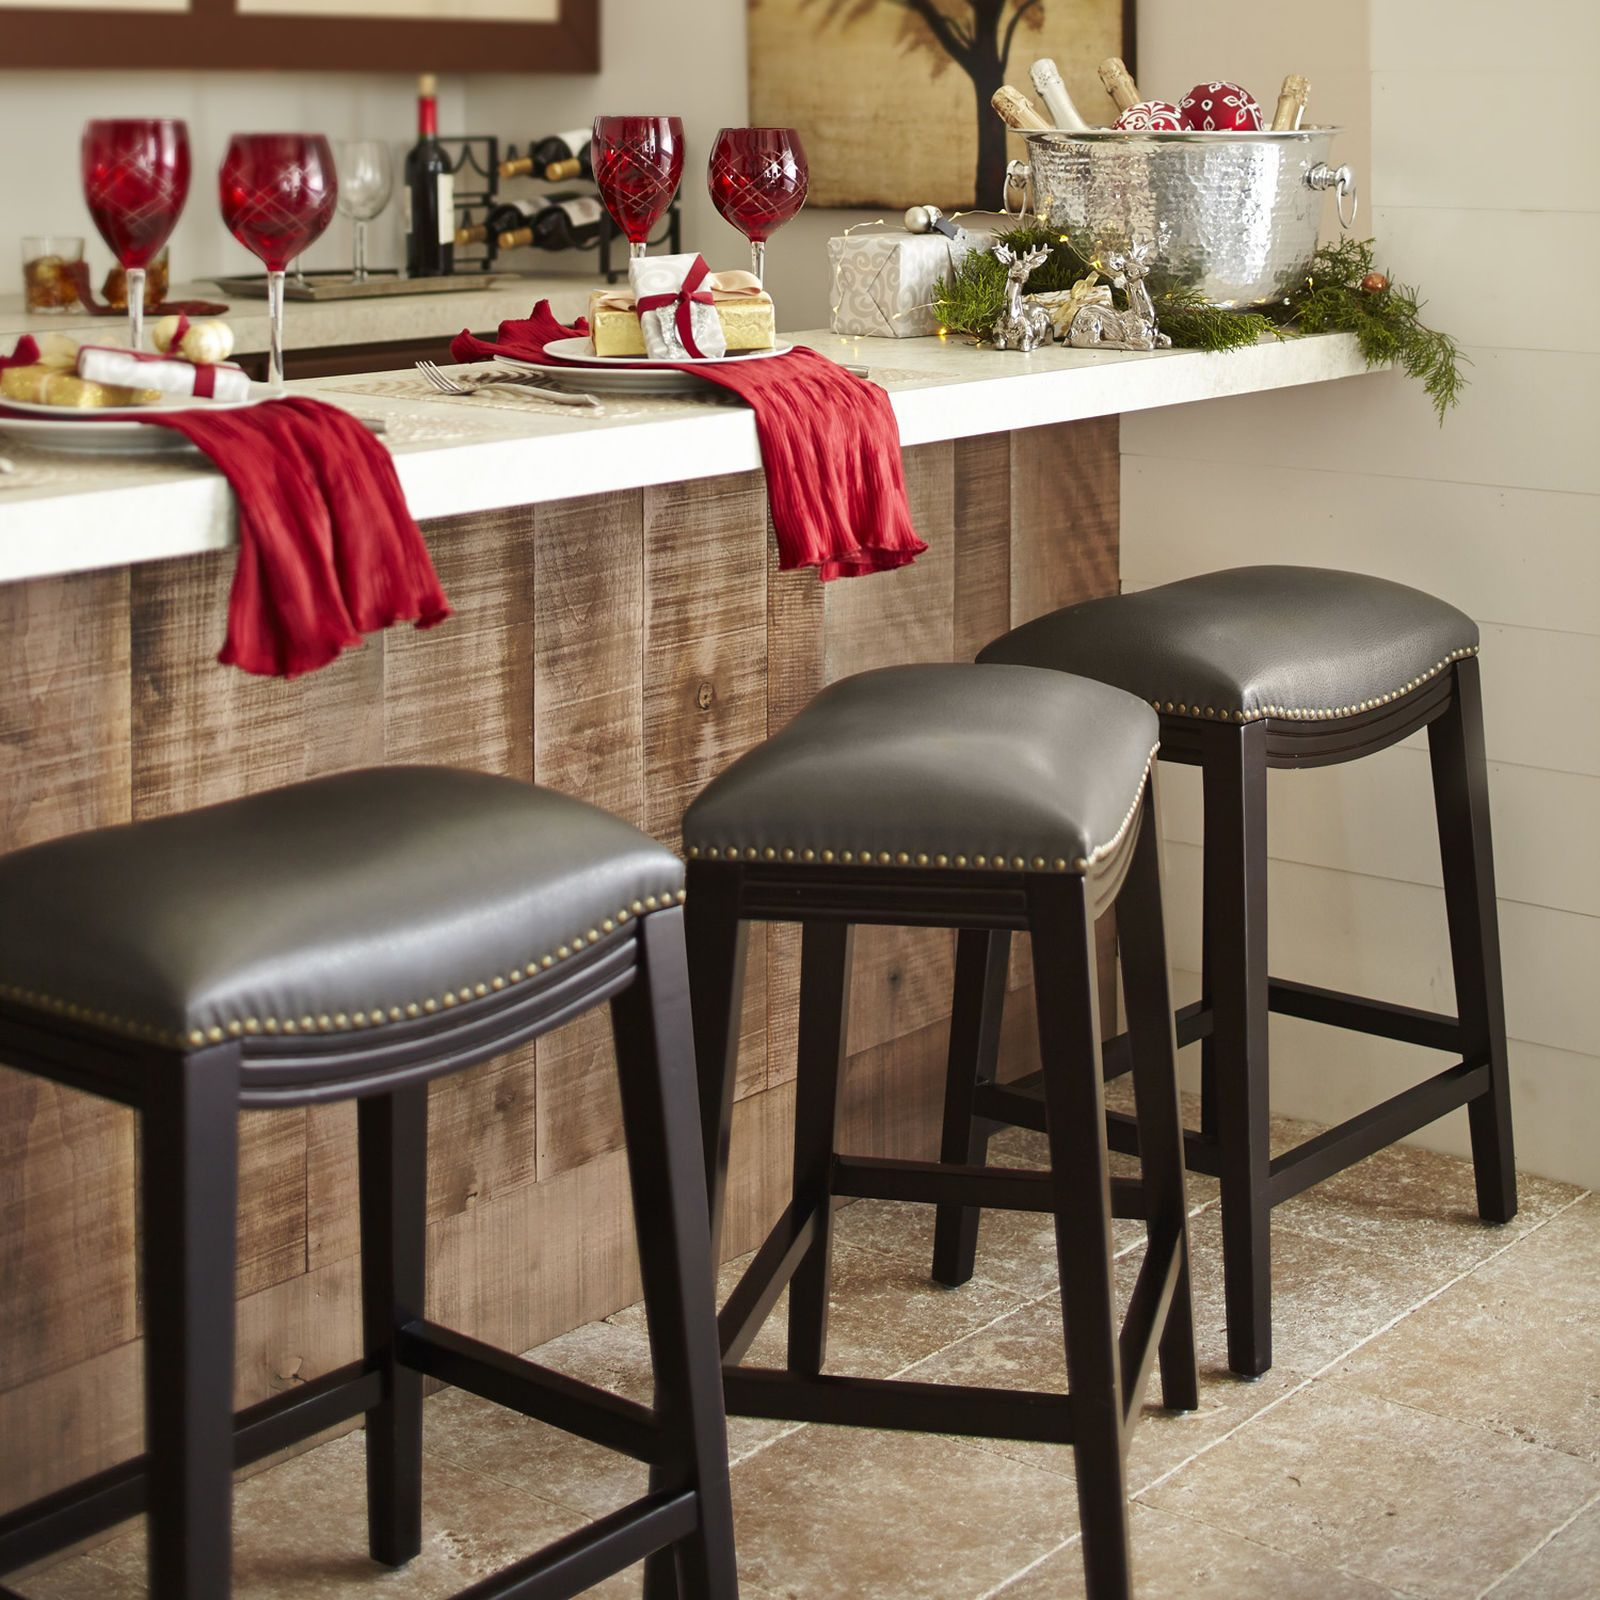 Halsted Pewter Backless Counter Bar Stool Backless Bar Stools Counter Stools Backless Counter Bar Stools